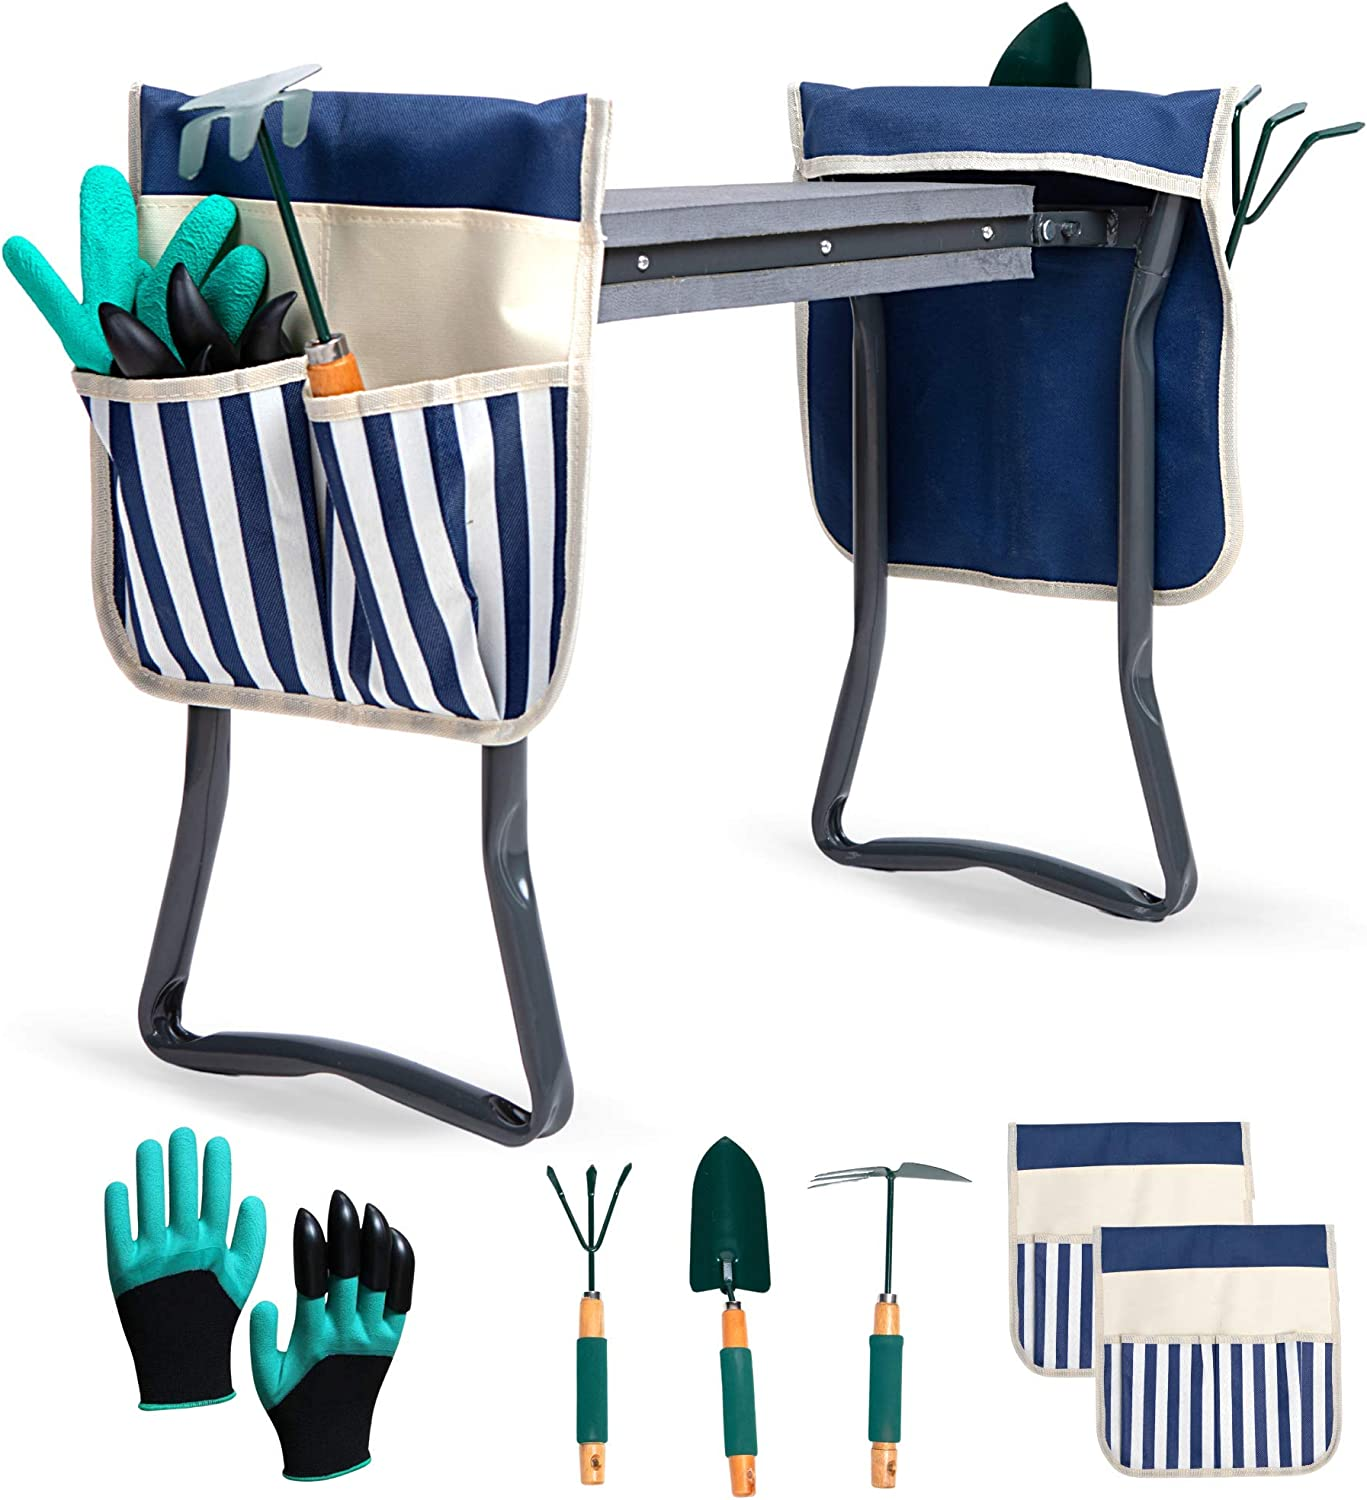 LYKO's Portable Garden Kneeler and Seat+2 Tool Bag-Gardening Bench W/ Free Garden Accessories Outdoor Tools Kit-Comfy Eva Foam Padded Garden Stool Kneeling Chair